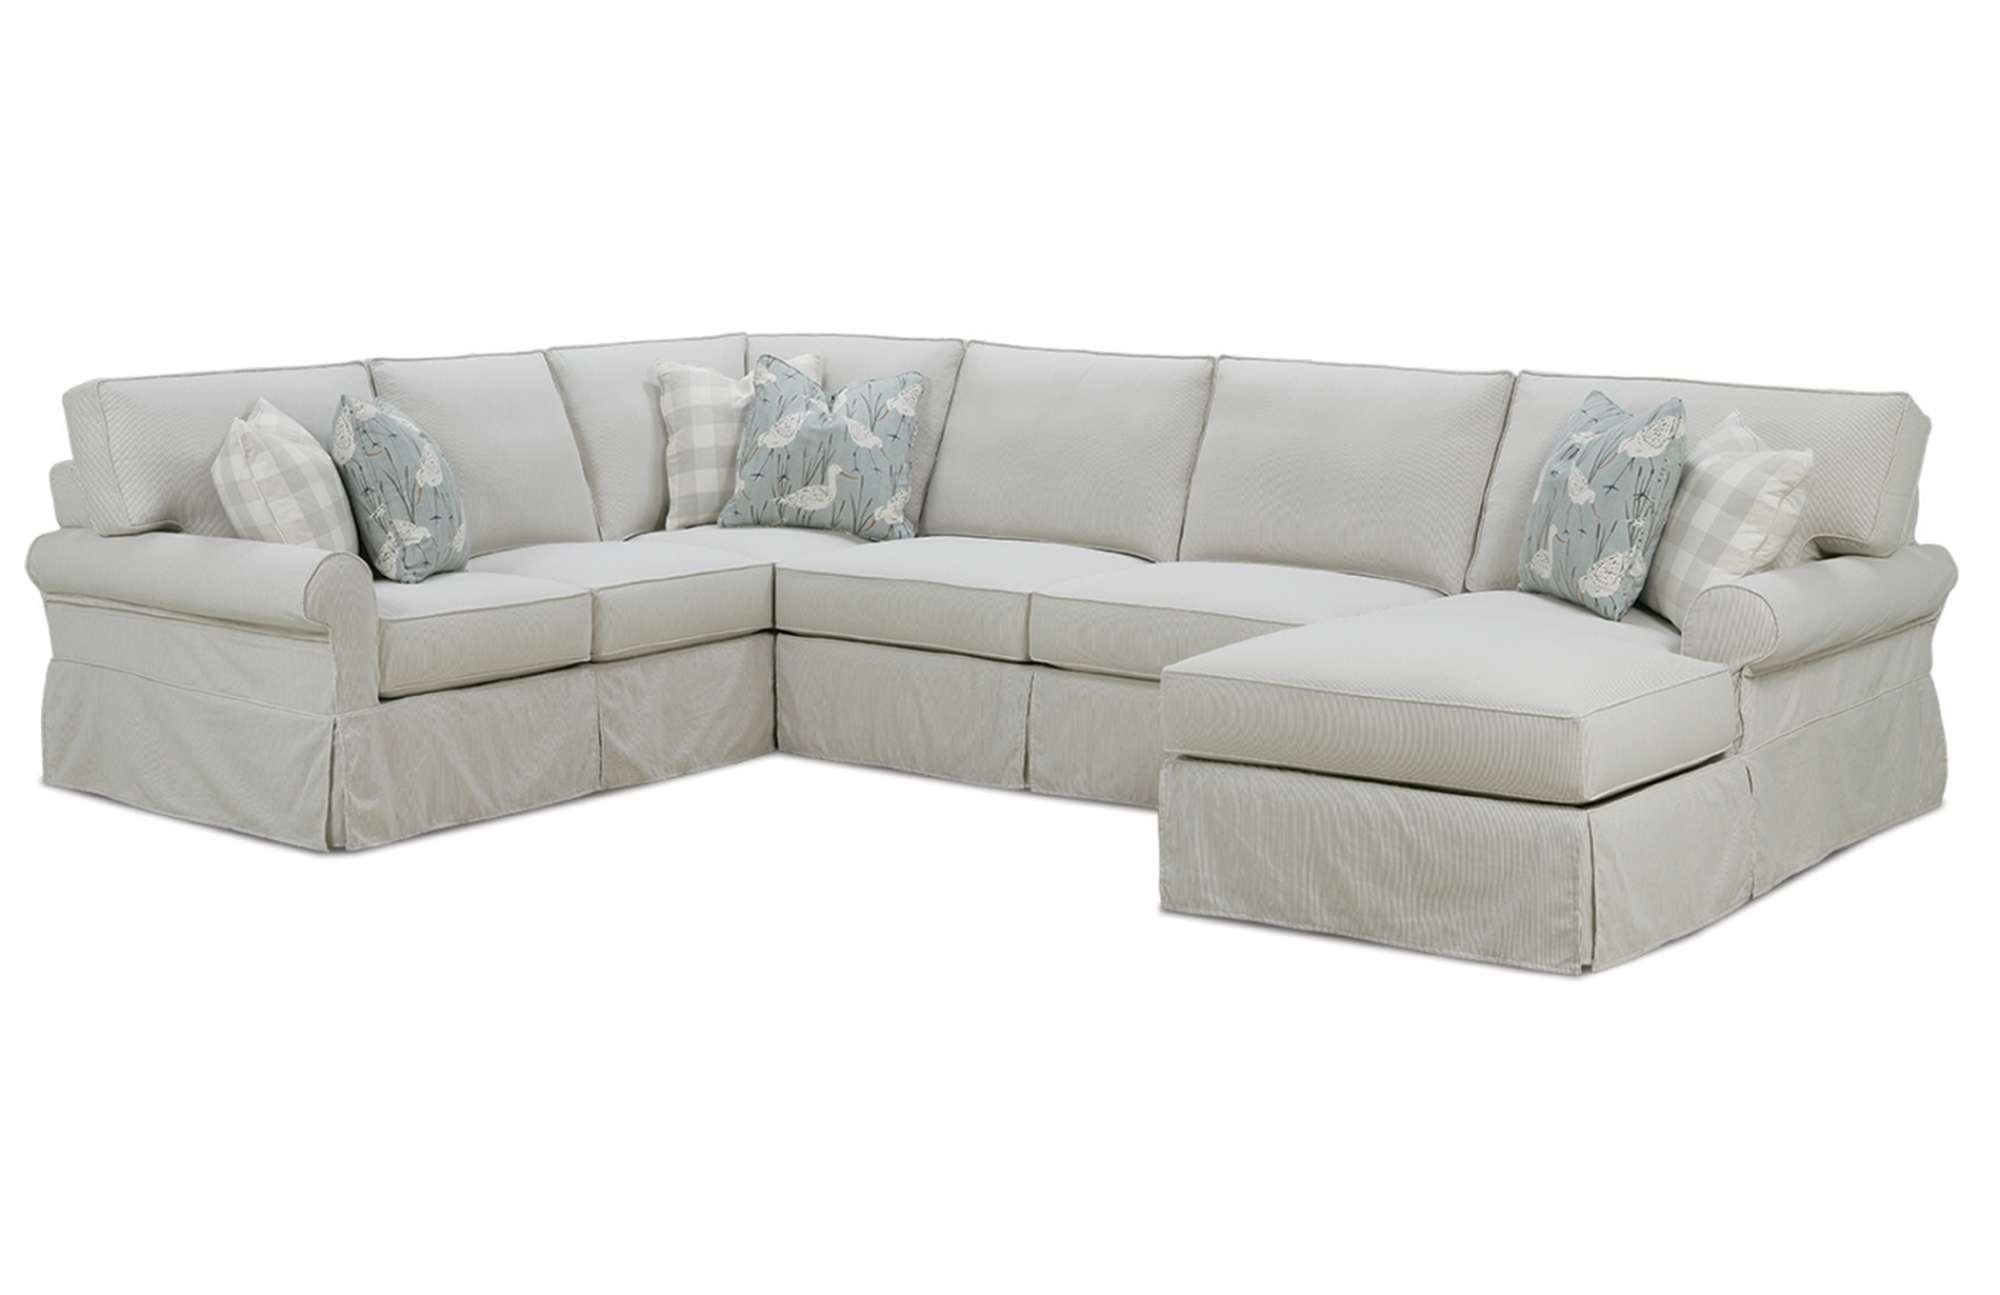 Easton Slipcover Sectionalrowe Furniture Throughout Rowe Sectional Sofas (Image 4 of 20)